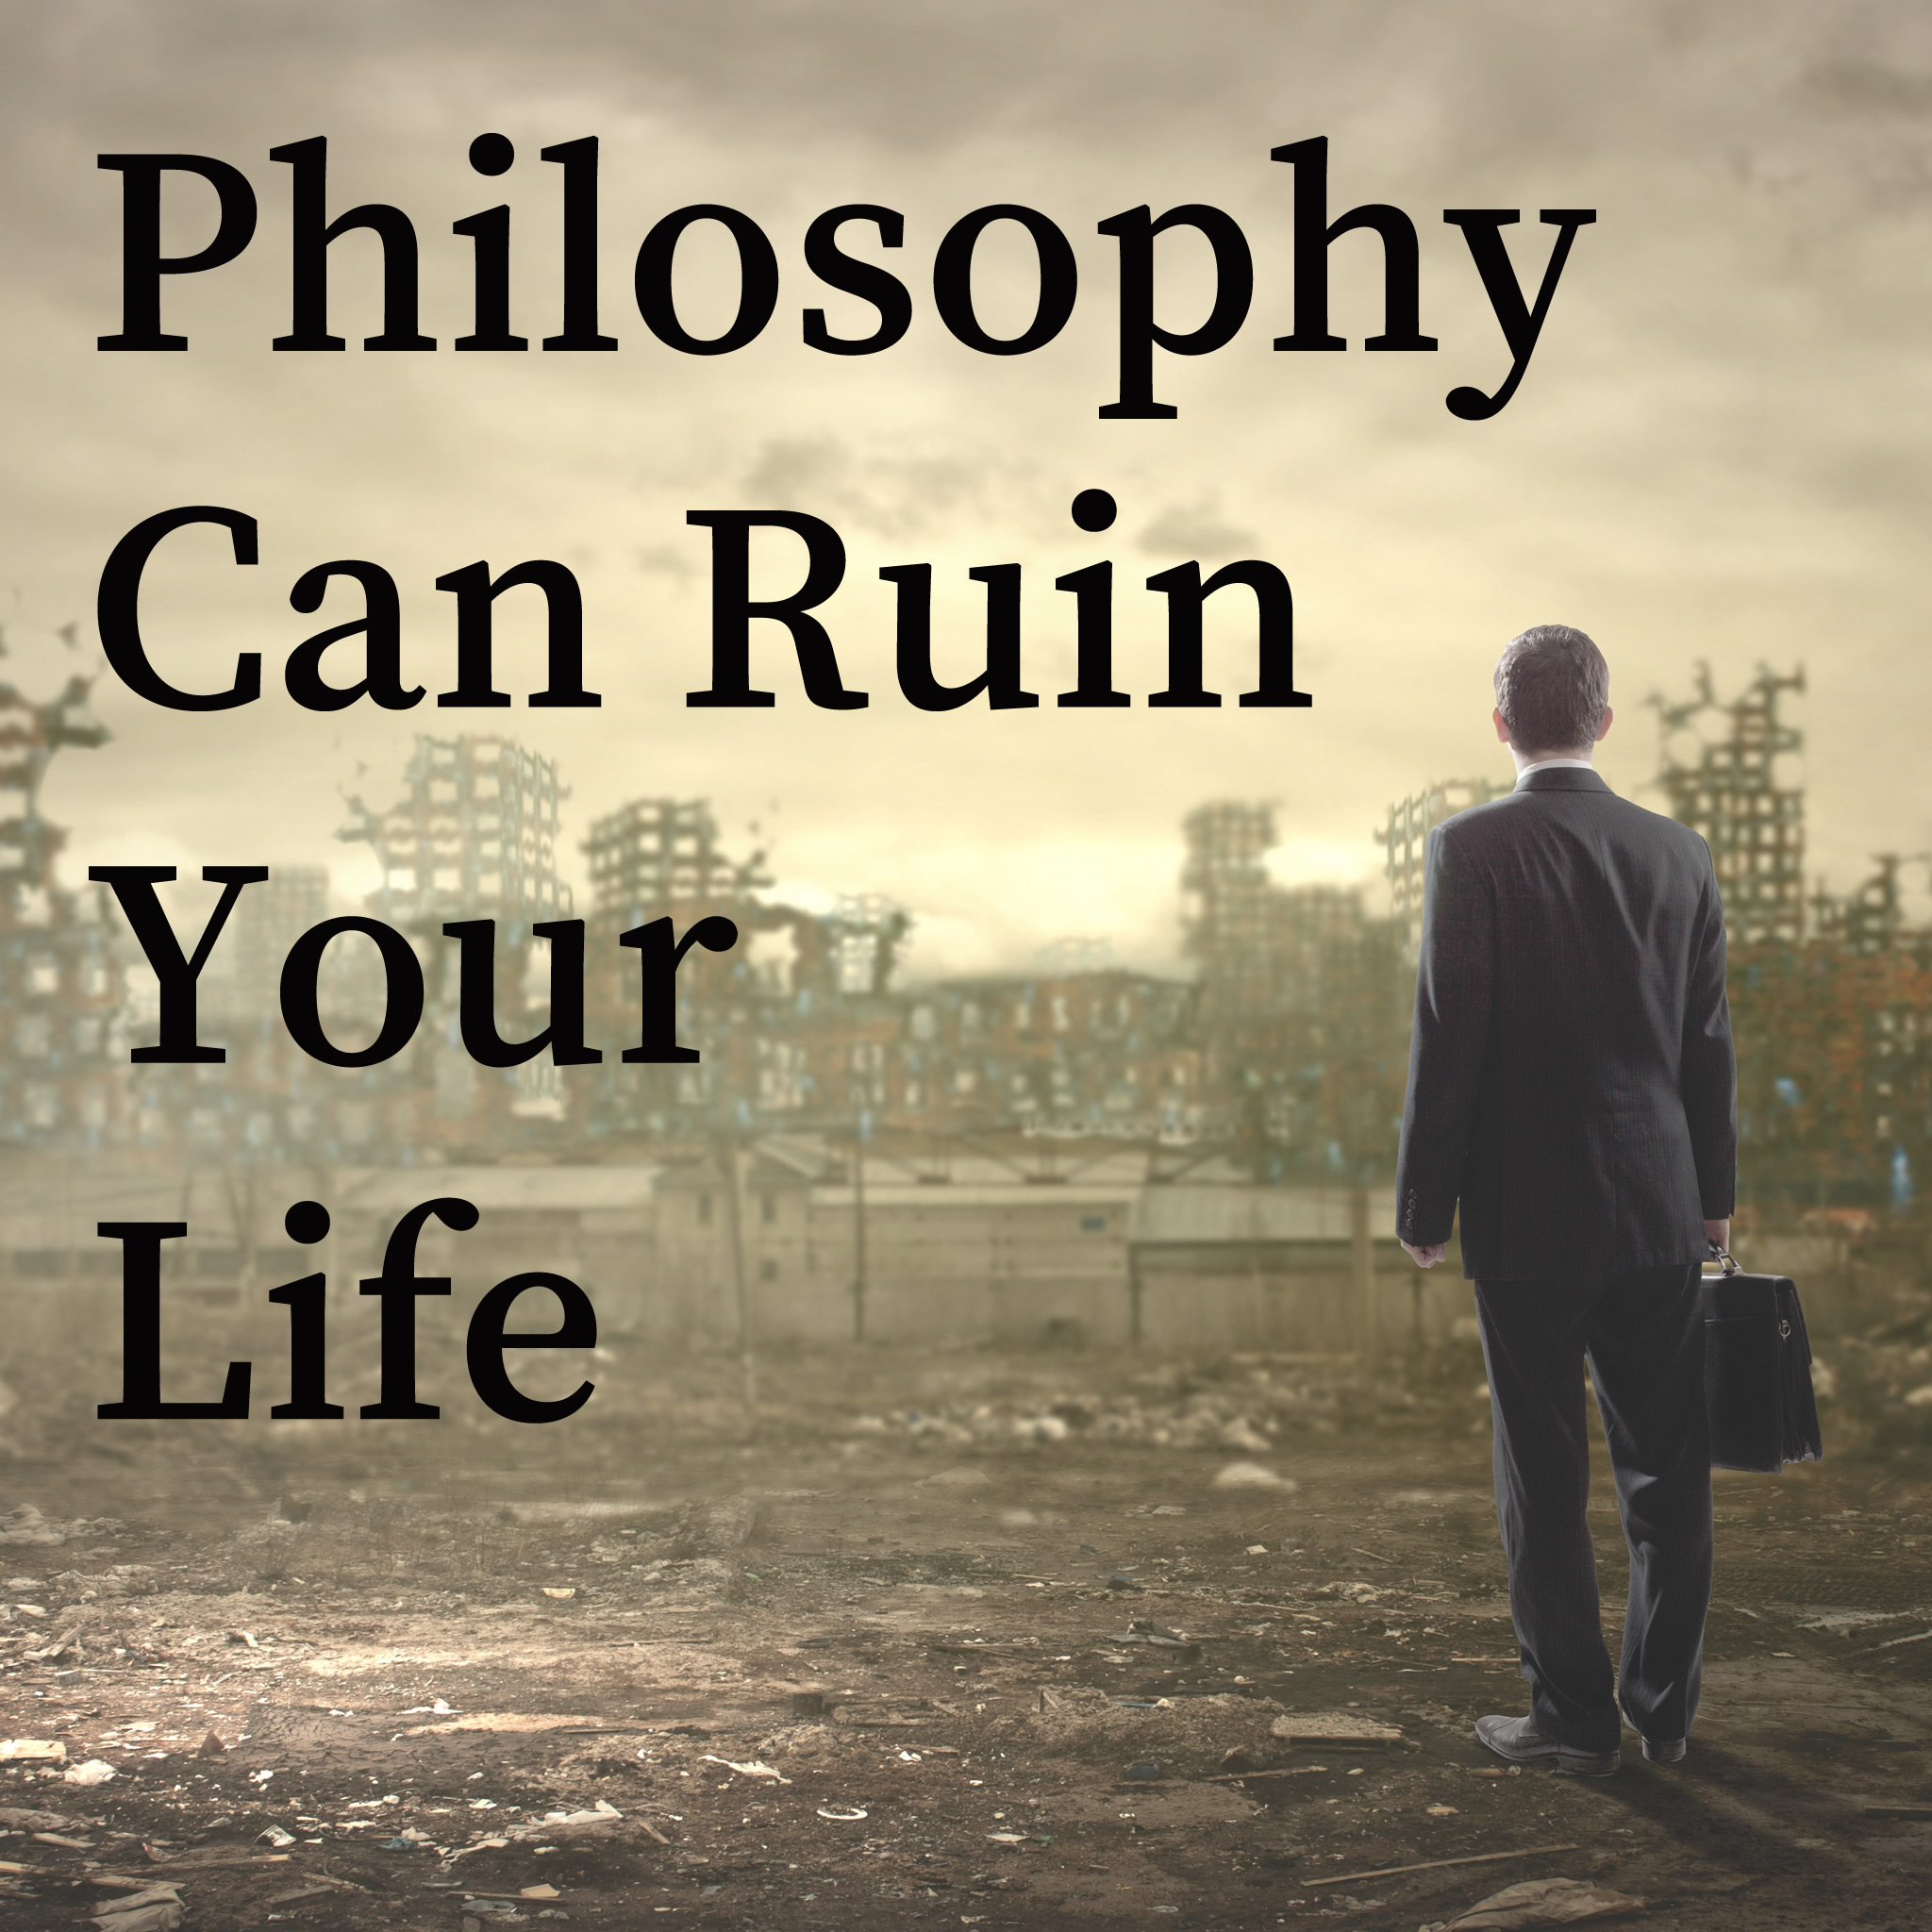 Philosophy Can Ruin Your Life